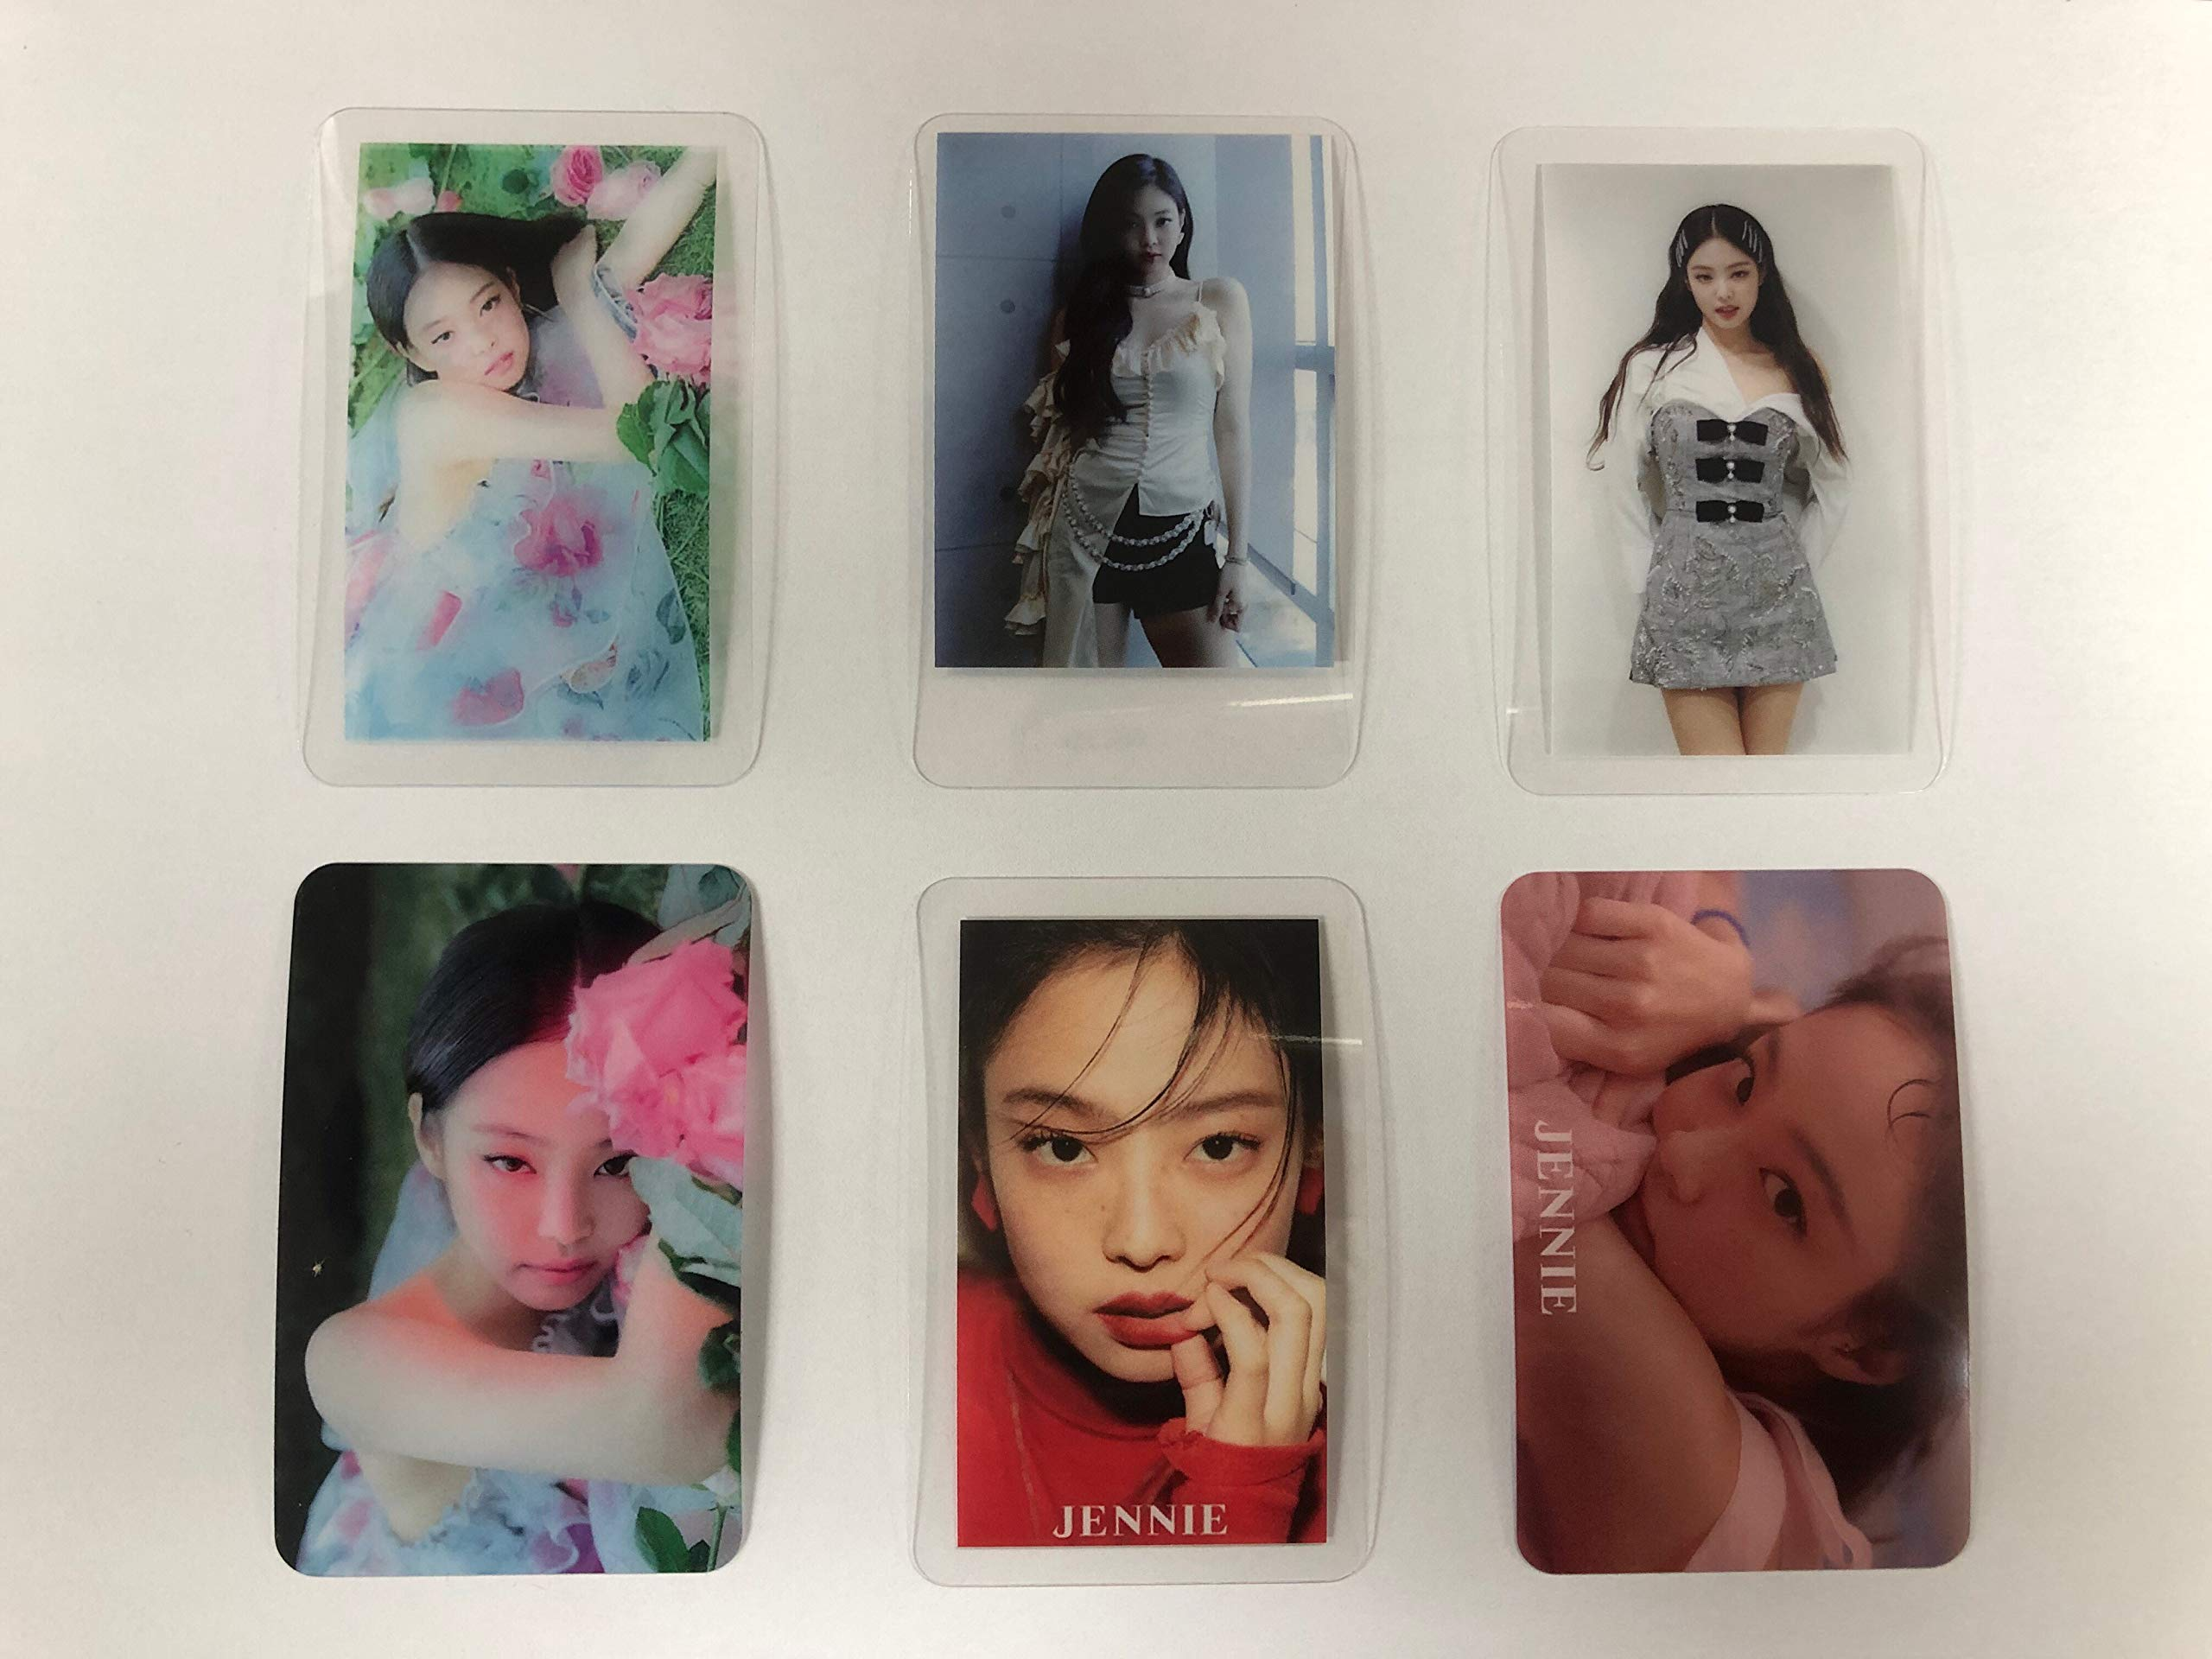 Blackpink Official Lightstick with one Random Jennie Acrylic photocard by Blackpink (Image #7)